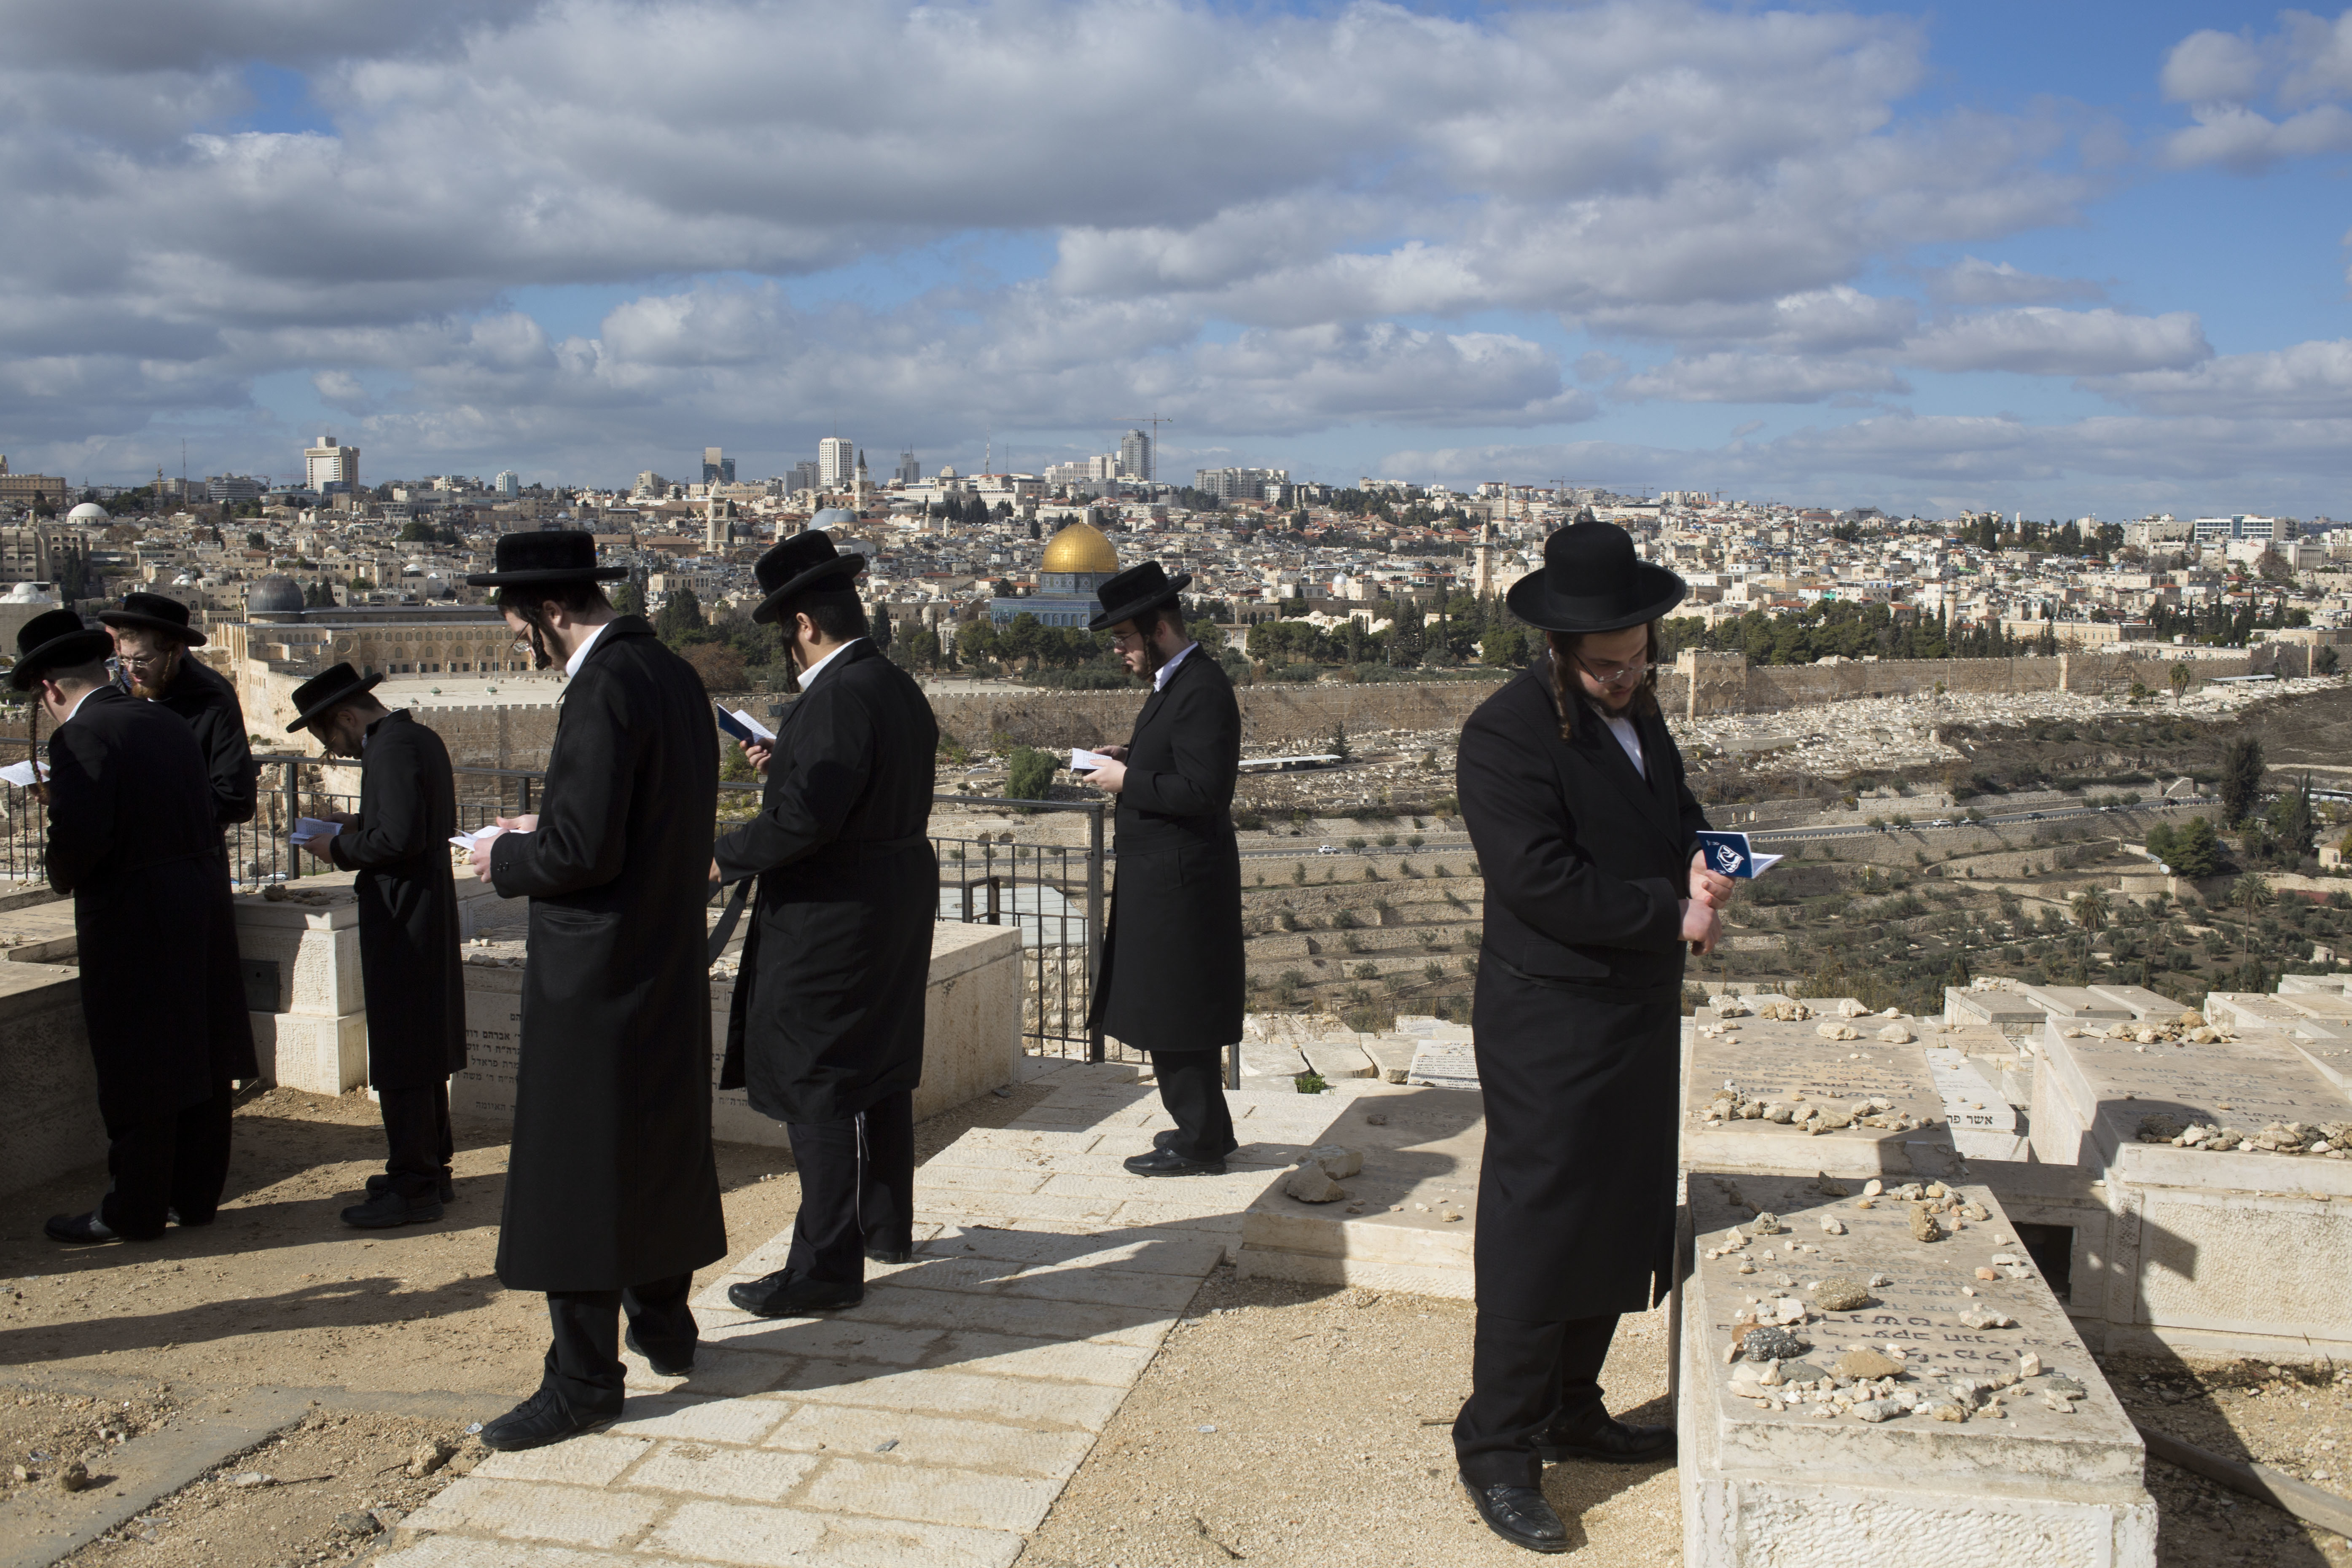 Jerusalem's Old City is seen while Jewish Orthodox men pray in a cemetery in Jerusalem, Dec. 7, 2017, a day after U.S. President Donald Trump's recognition of Jerusalem as Israel's capital.